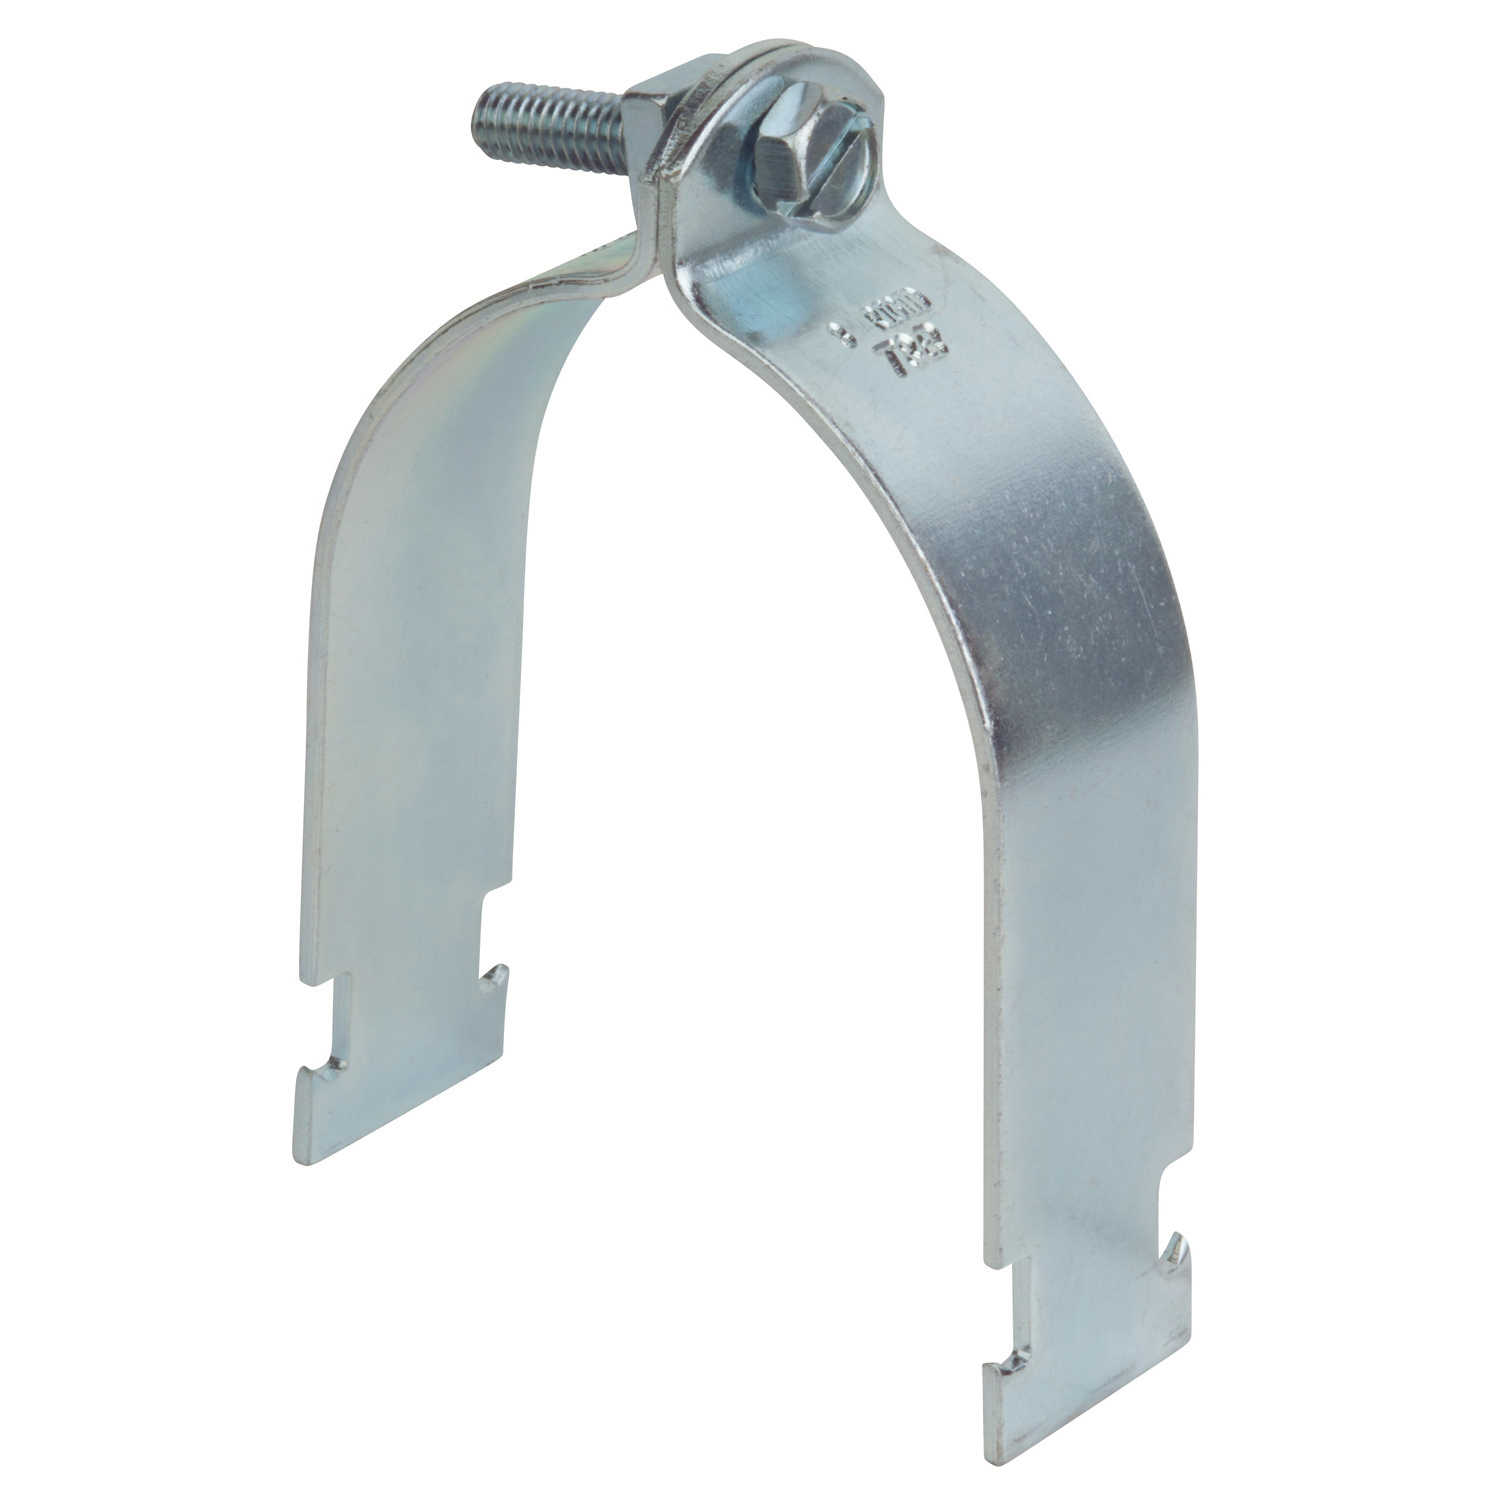 "Superstrut 702-3/4-SS 3/4"" Stainless Steel Pipe Strap. For use with Rigid/IMC"